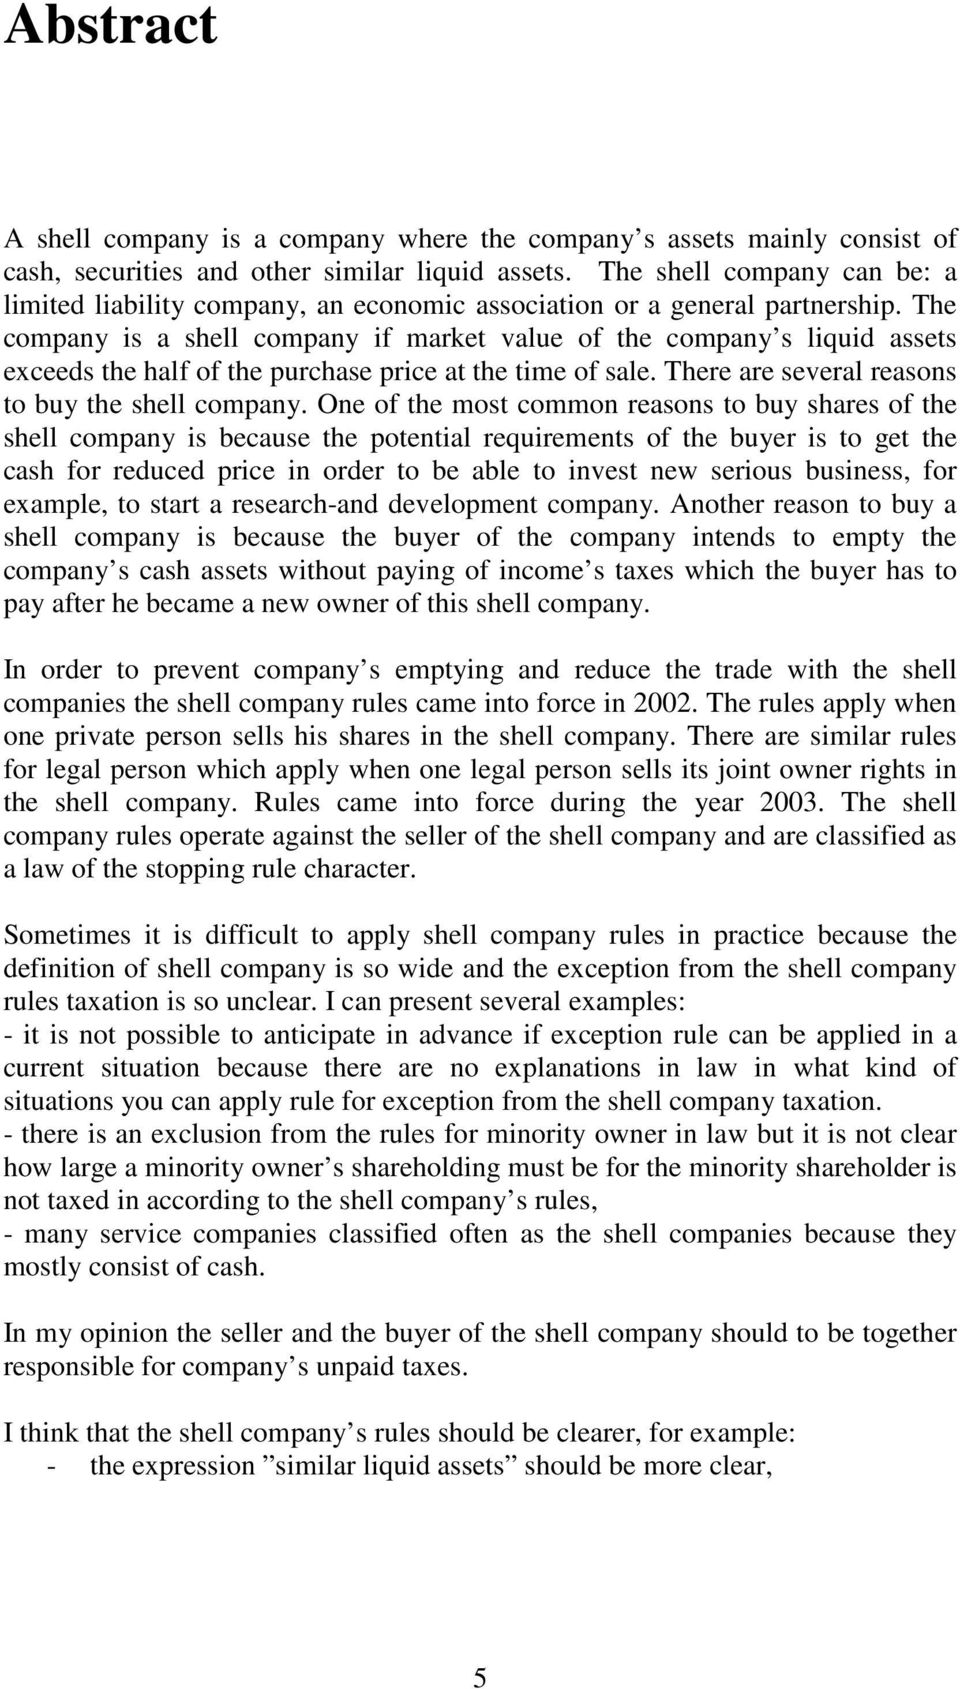 The company is a shell company if market value of the company s liquid assets exceeds the half of the purchase price at the time of sale. There are several reasons to buy the shell company.